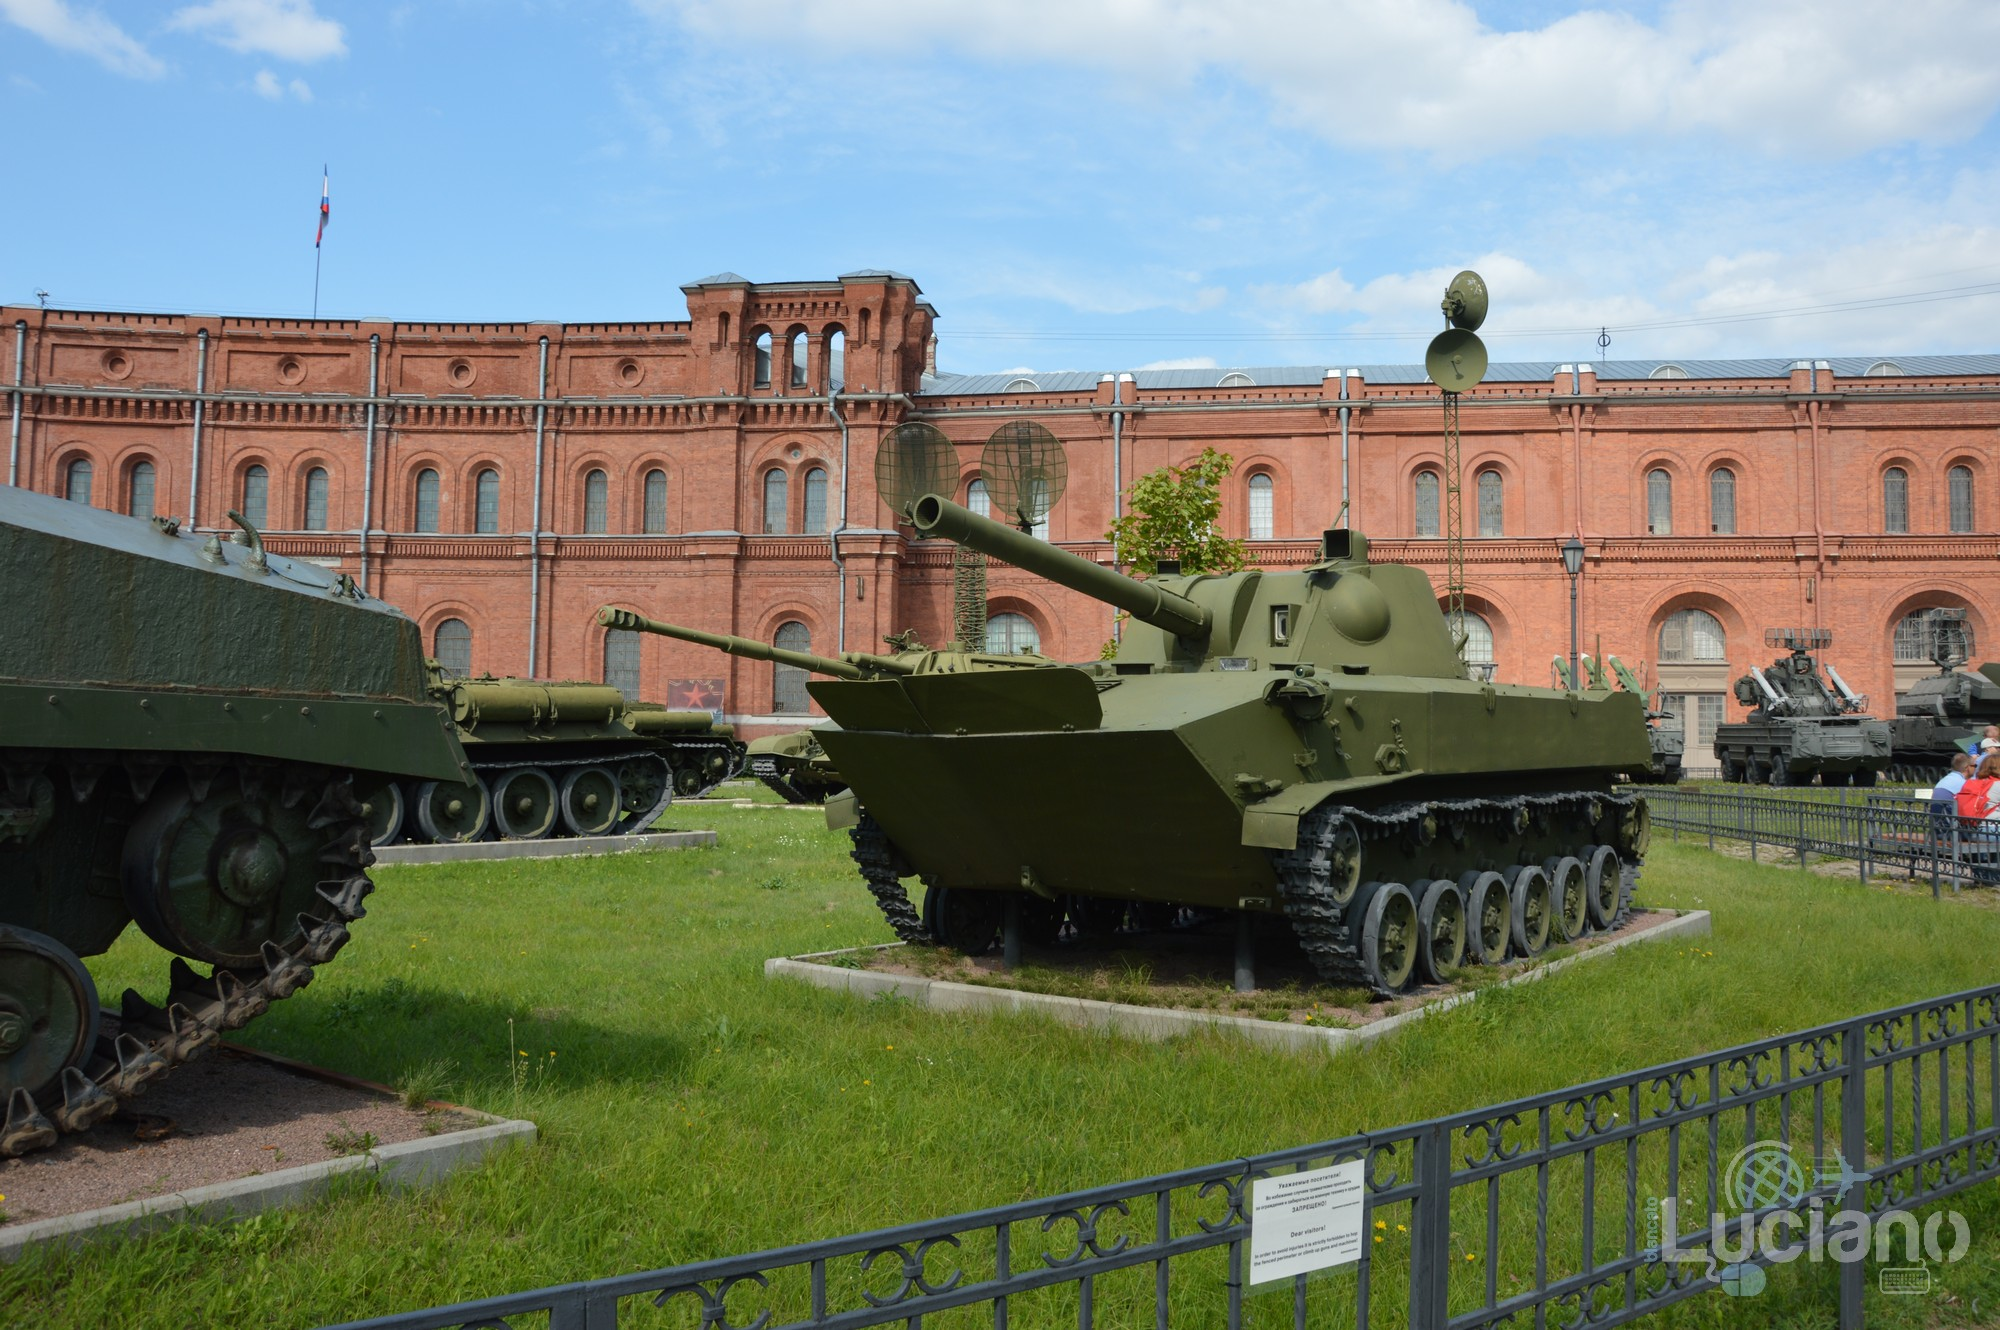 Military-Historical-Museum-of-Artillery-Engineer-and-Signal-Corps-St-Petersburg-Russia-Luciano-Blancato- (61)